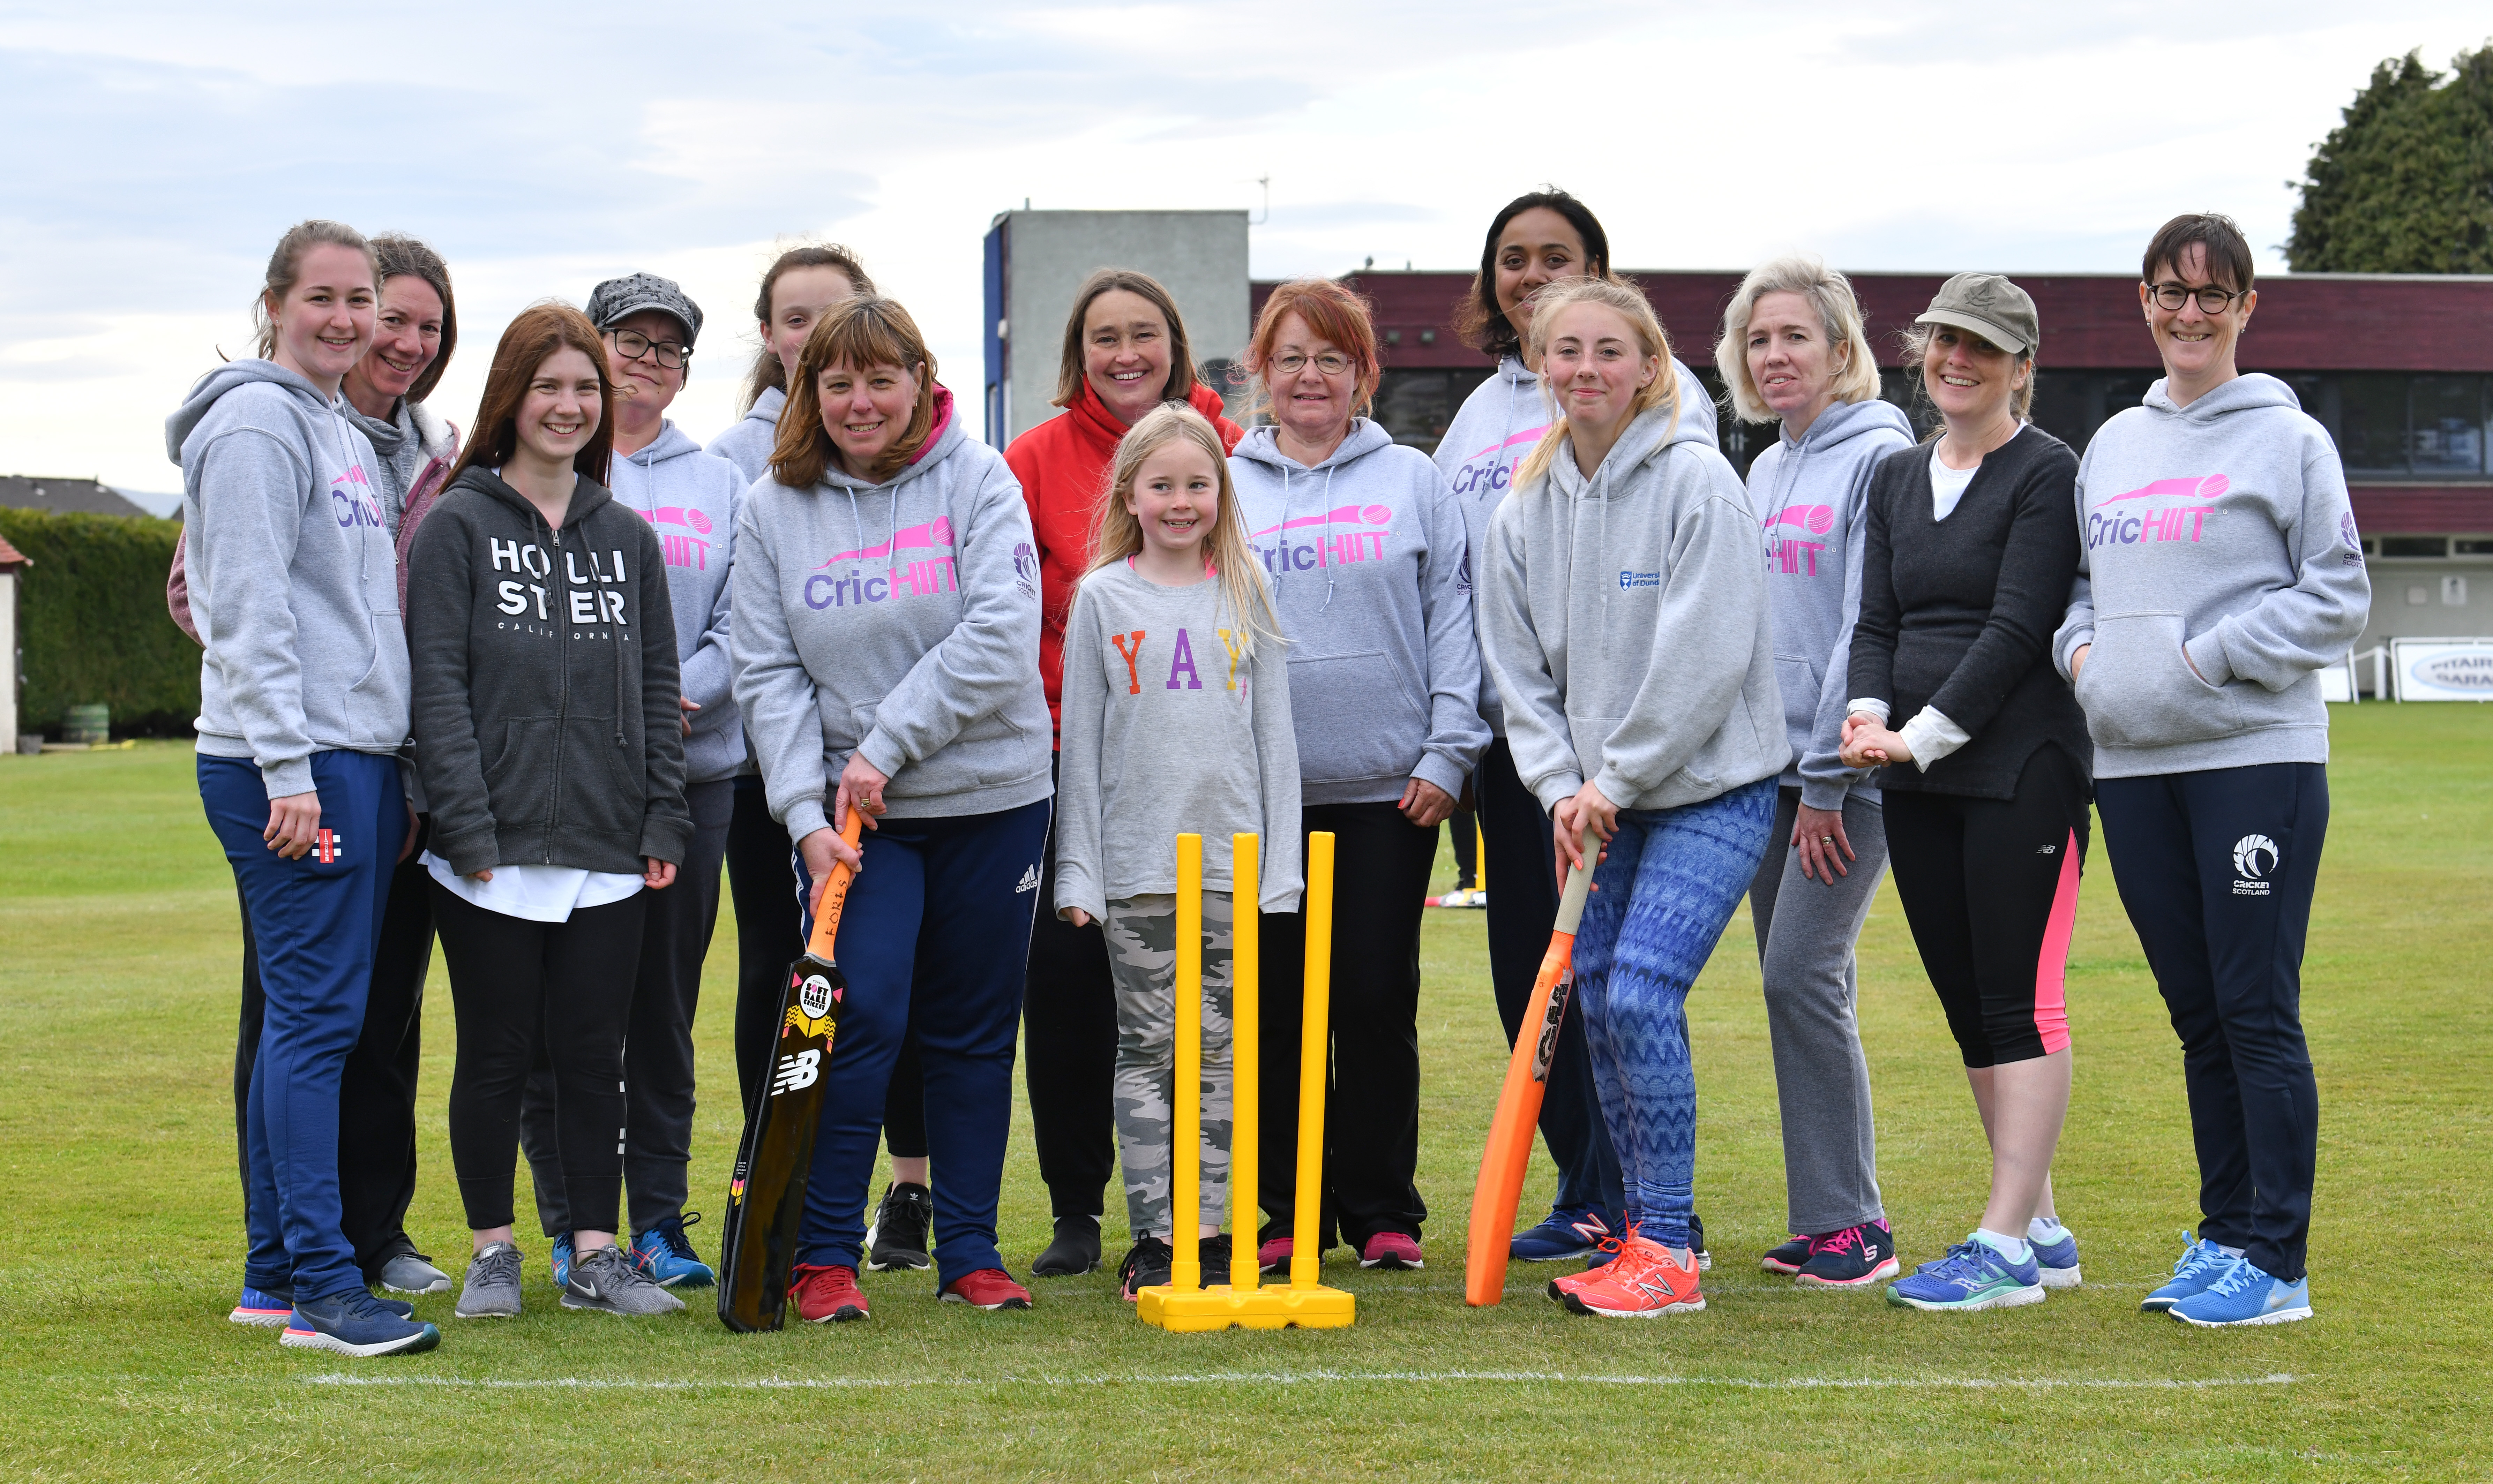 Broughty Ferry-based Forfarshire Cricket Club marked the foundation of their new women's section last Friday with a game of softball cricket.